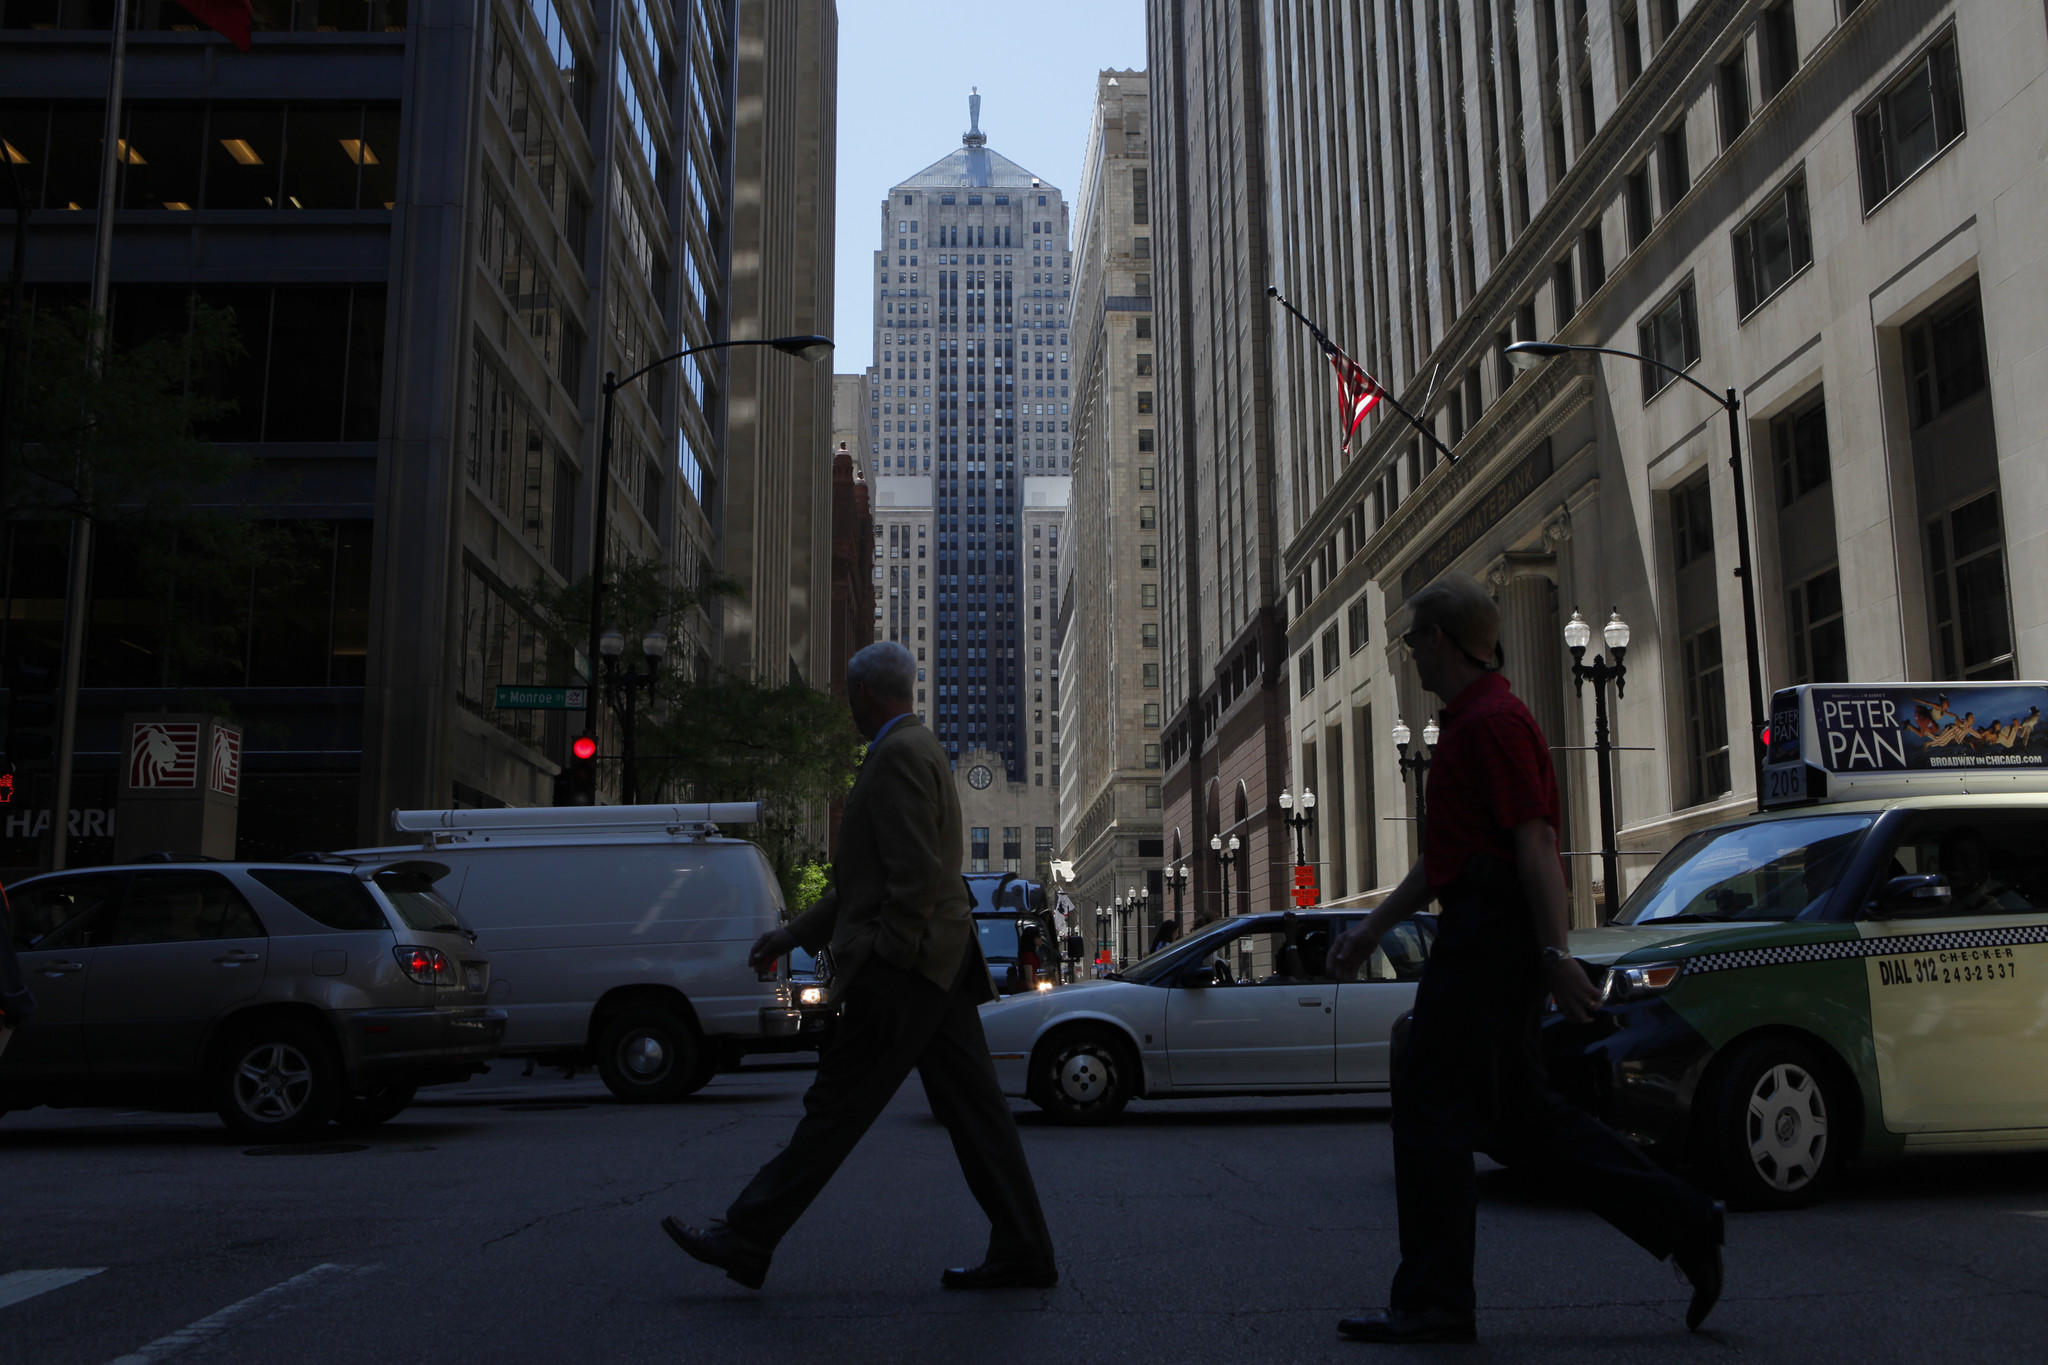 Pedestrians cross LaSalle Street in the shadow of the iconic Chicago Board of Trade Building.